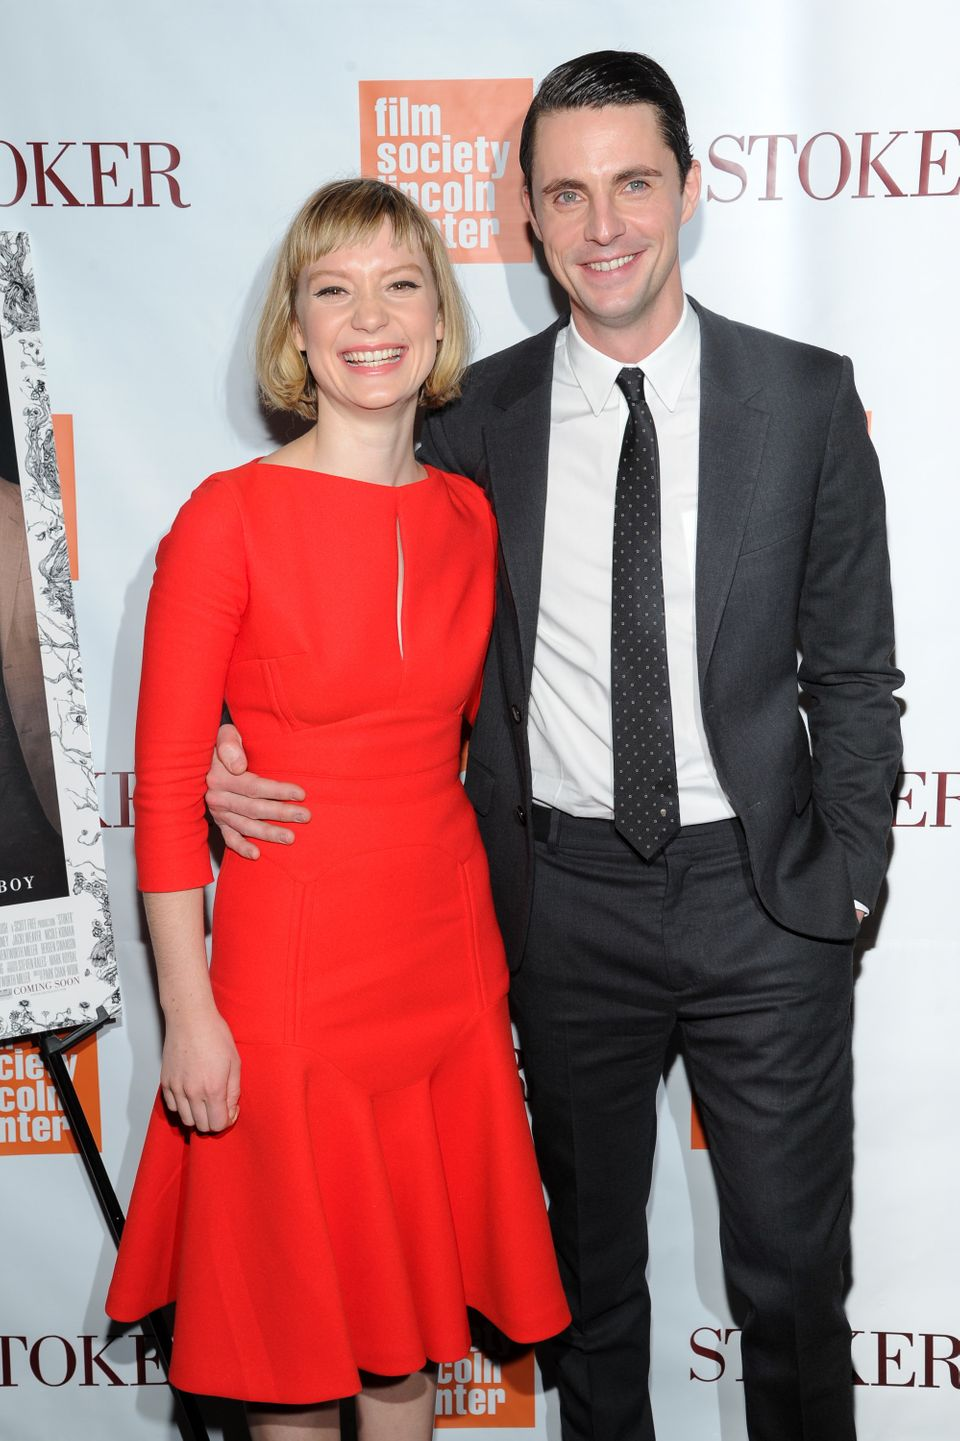 """Actors Mia Wasikowska and Matthew Goode attend the premiere of """"Stoker"""" at Walter Reade Theatre on Wednesday, Feb. 27, 2013 i"""